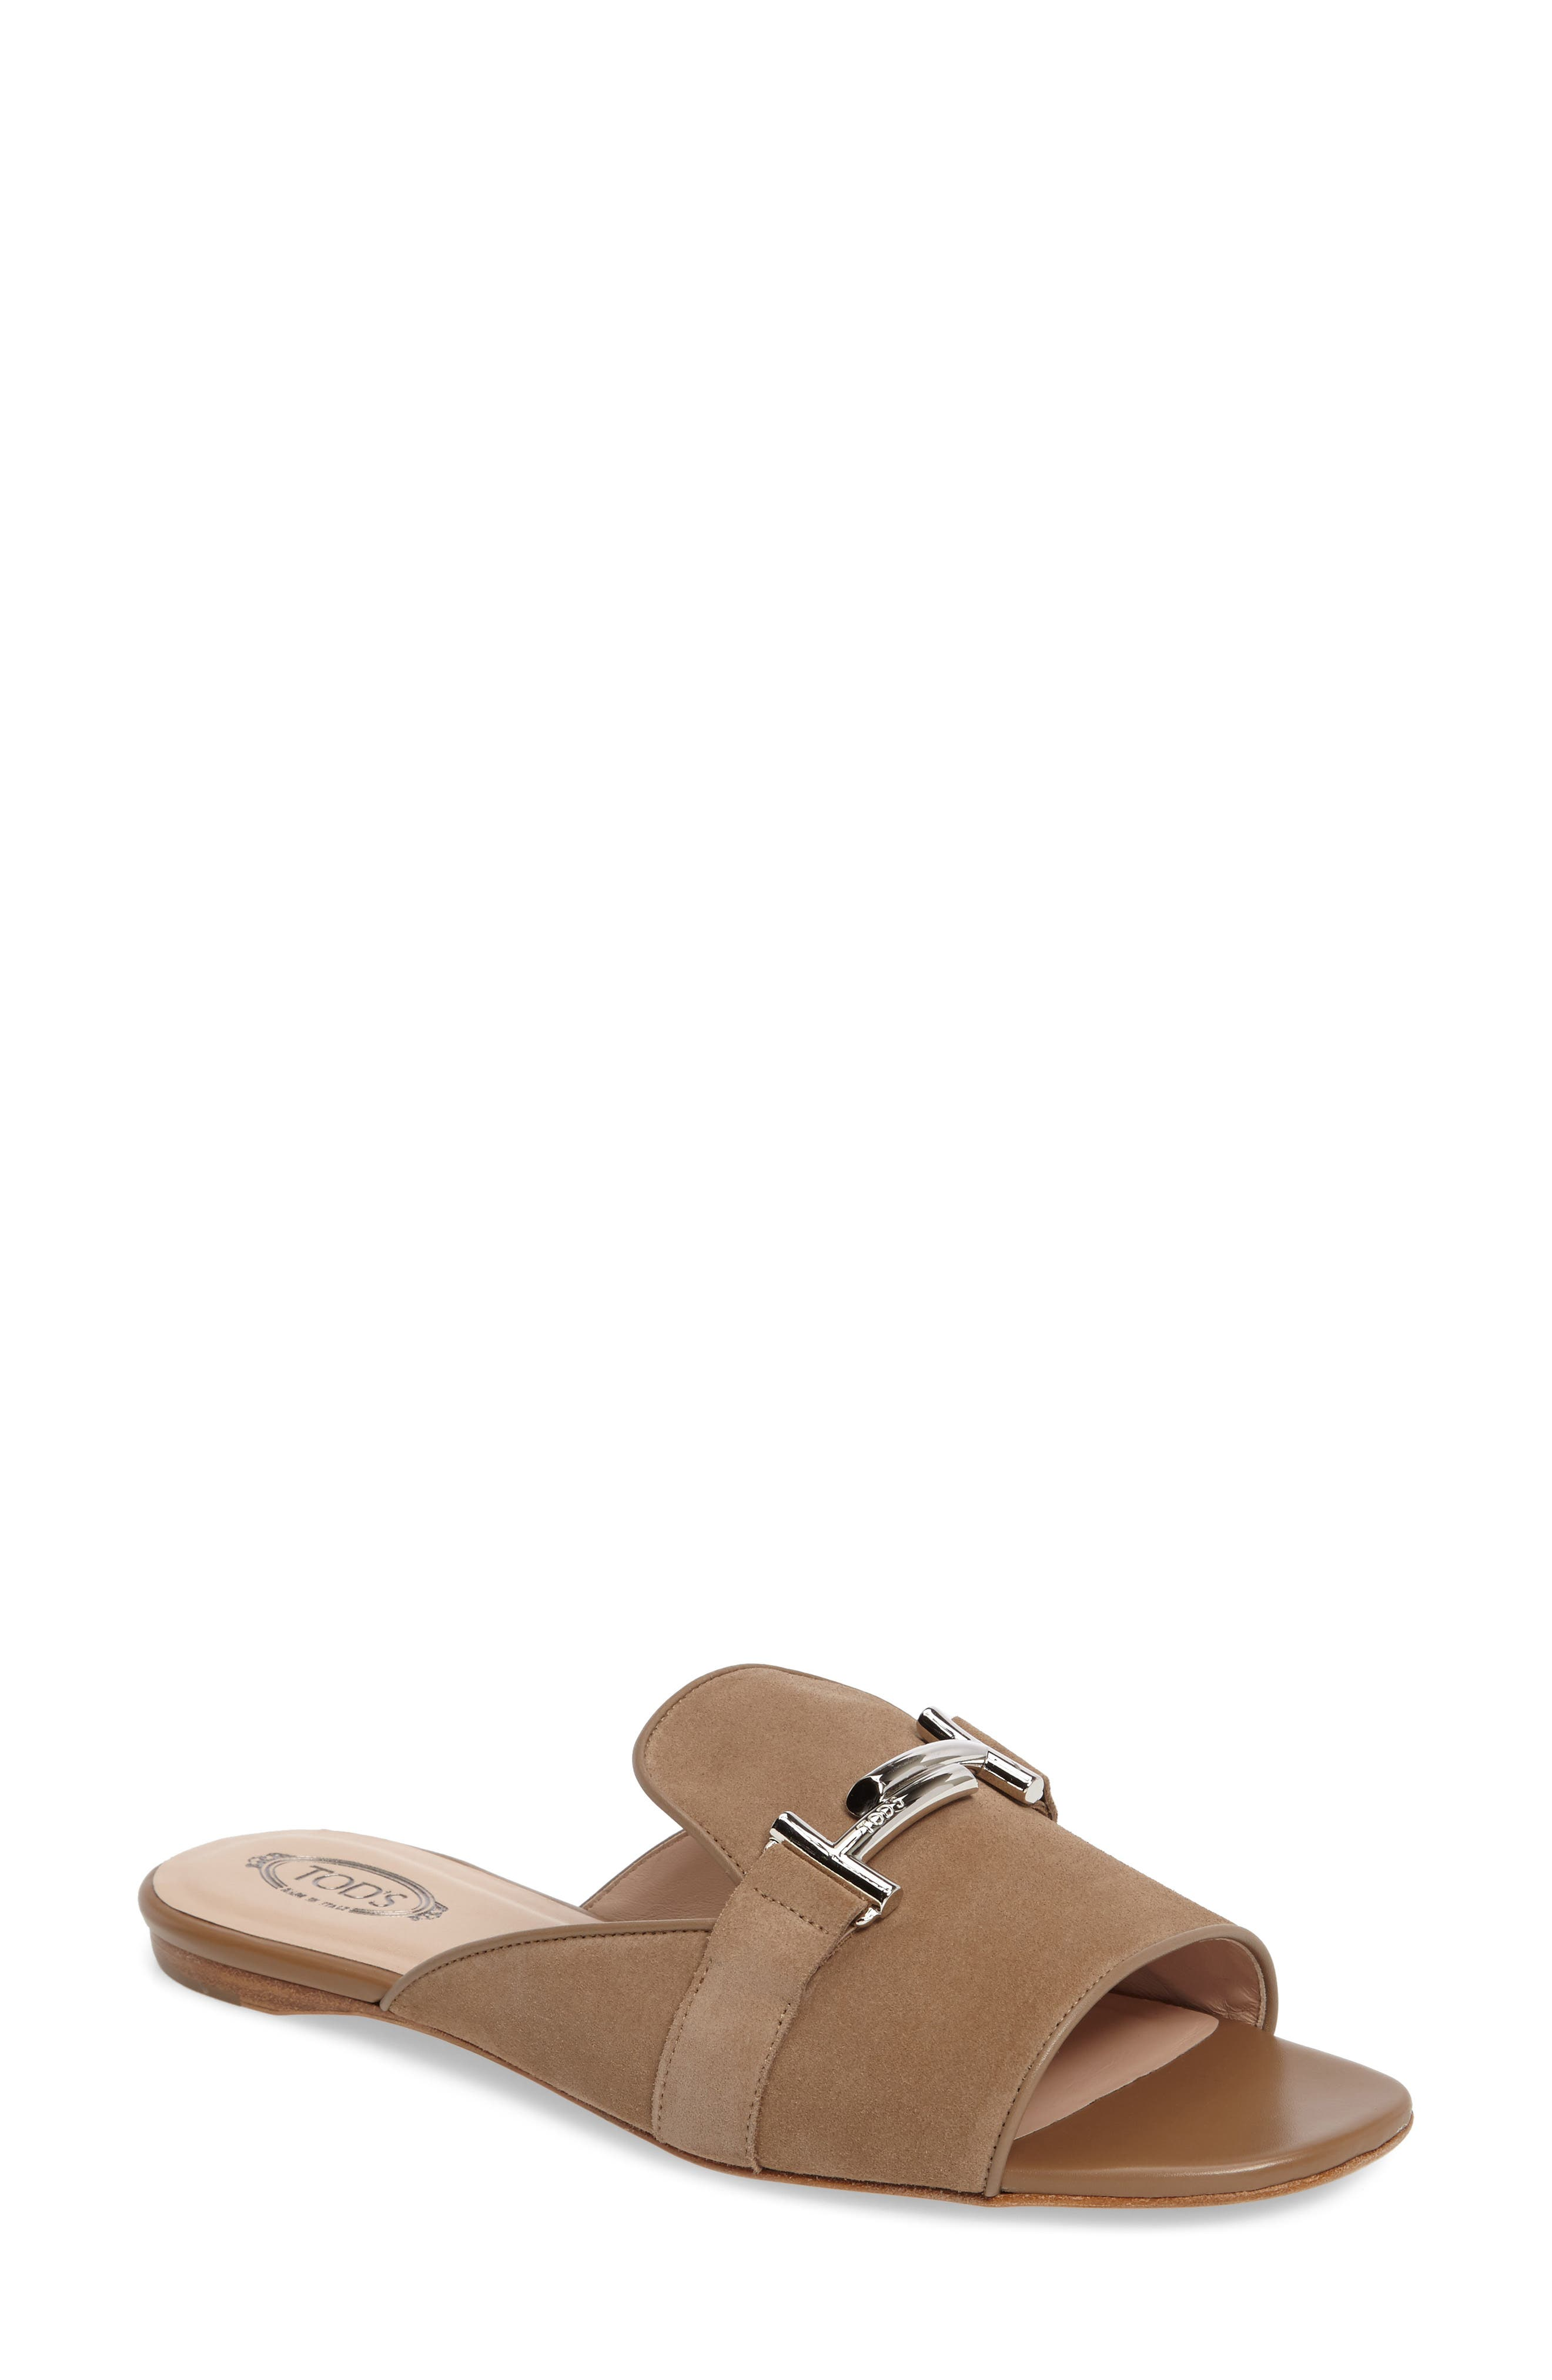 Double T Open Toe Loafer Mule,                         Main,                         color, Tan